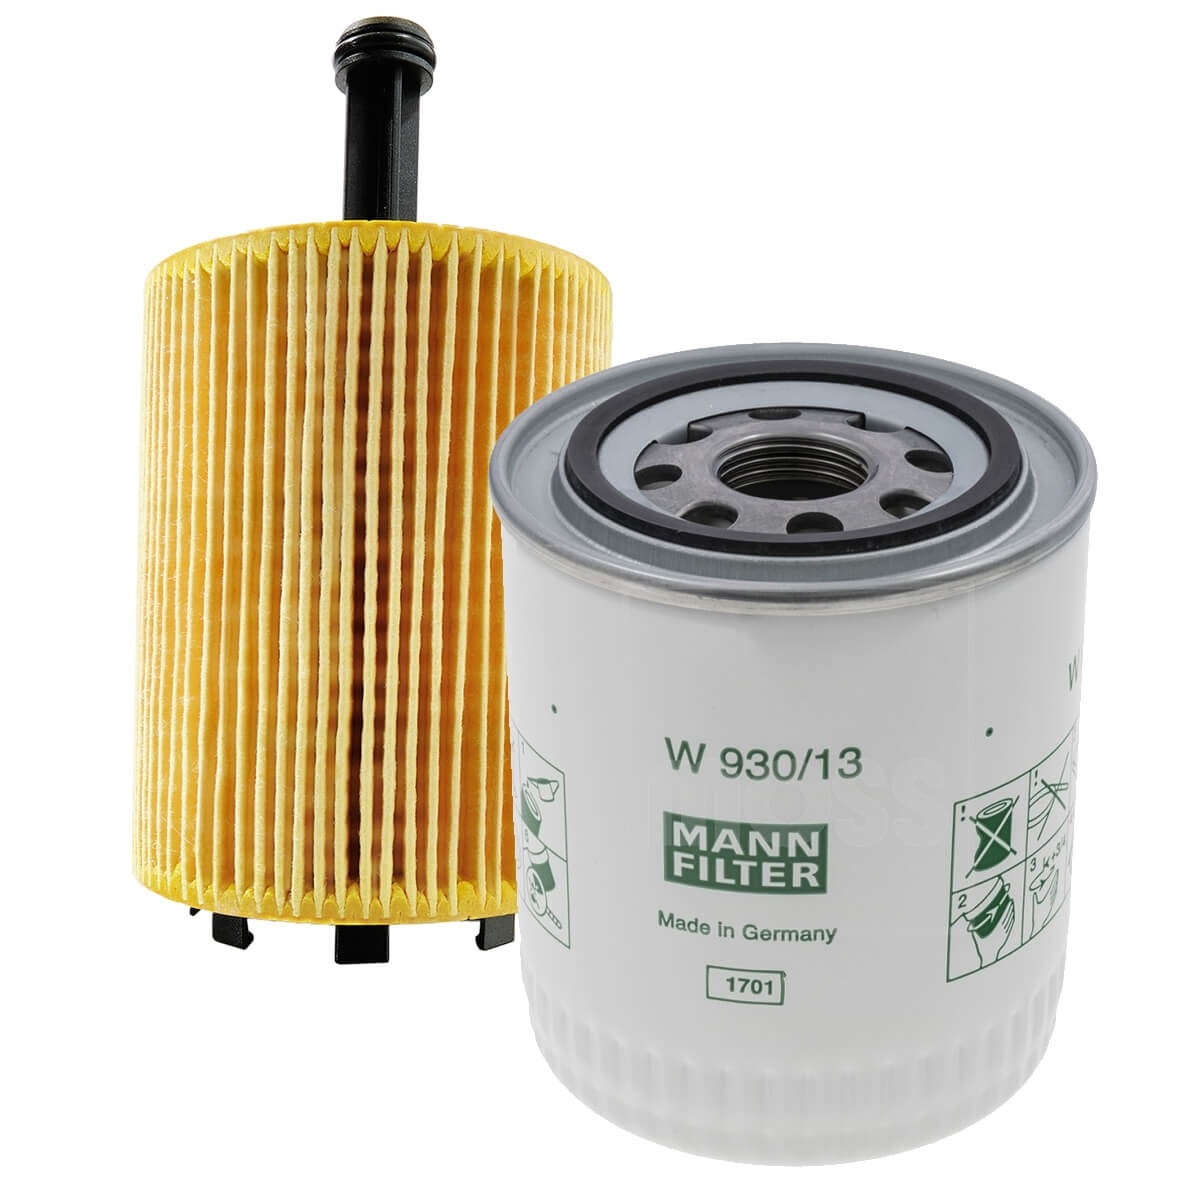 HYUNDAI H-1 Oil Filter